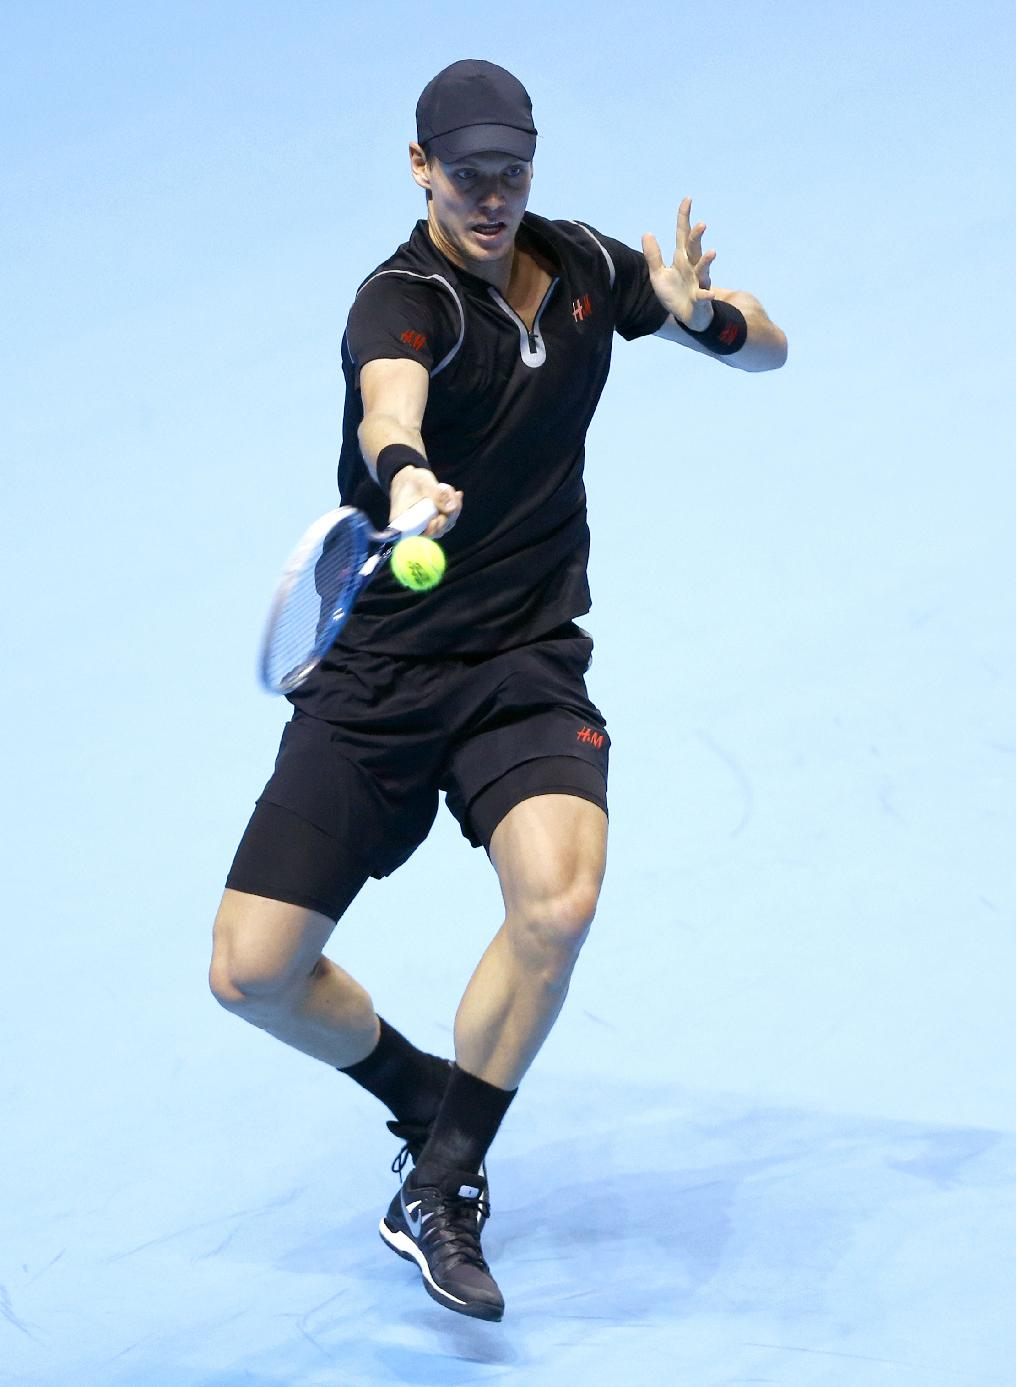 Tomas Berdych of the Czech Republic plays a return to Stanislas Wawrinka of Switzerland during their ATP World Tour Finals tennis match at the O2 Arena in London, Monday, Nov. 4, 2013